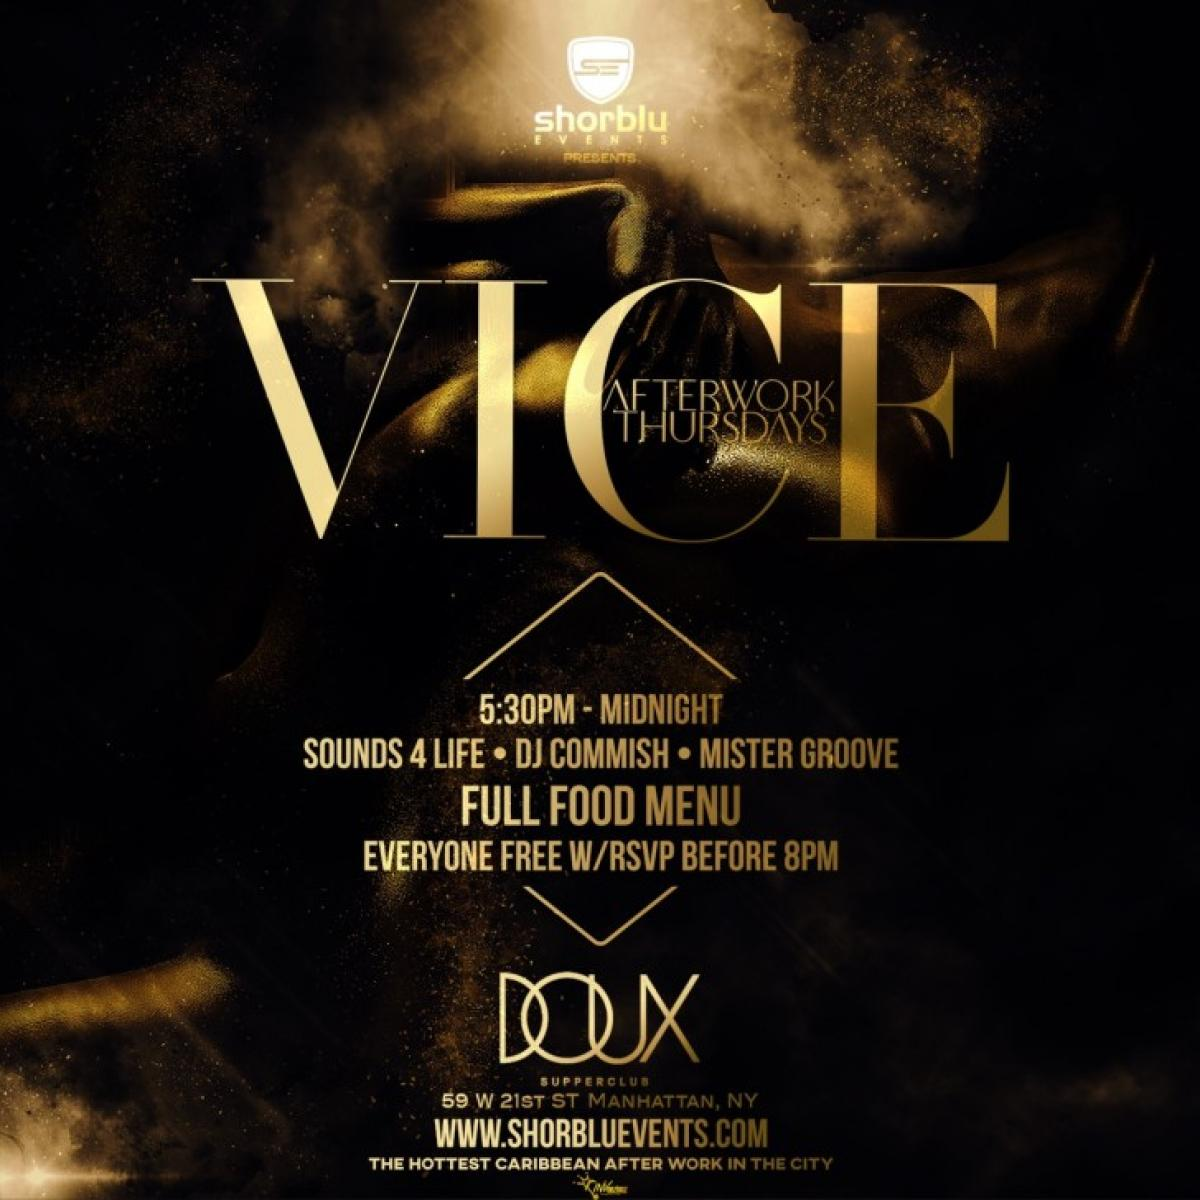 Vice flyer or graphic.